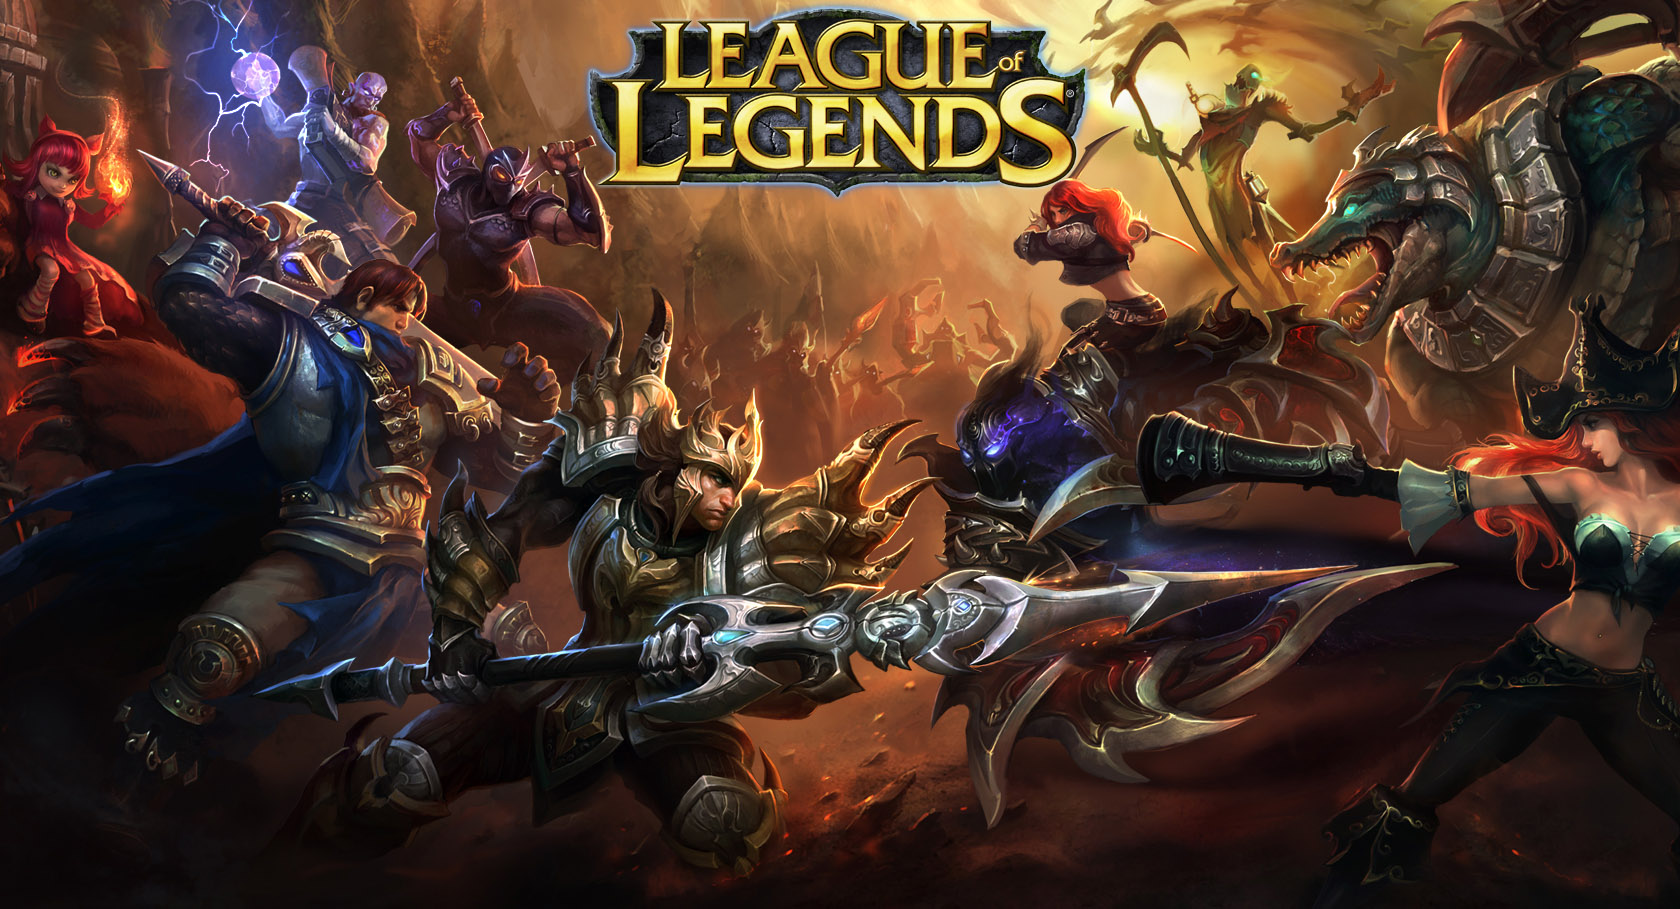 ¿Fanático de League of Legends? Esto le interesa